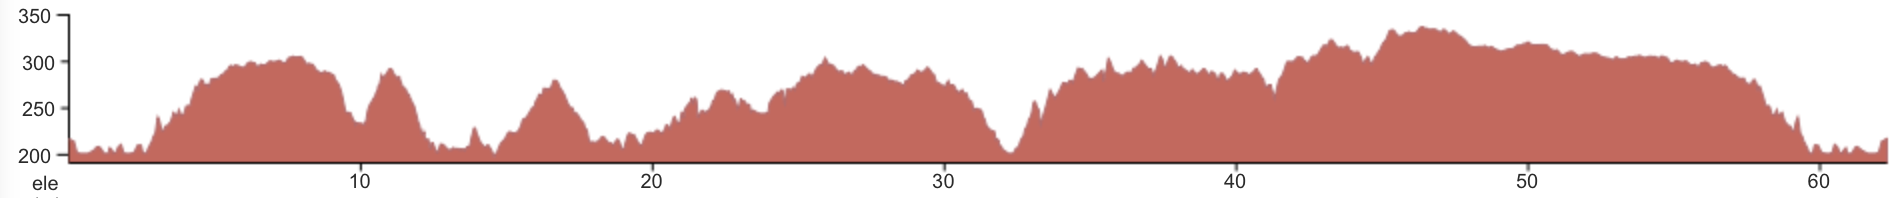 Screen Shot 2018-09-29 at 17.04.15.png